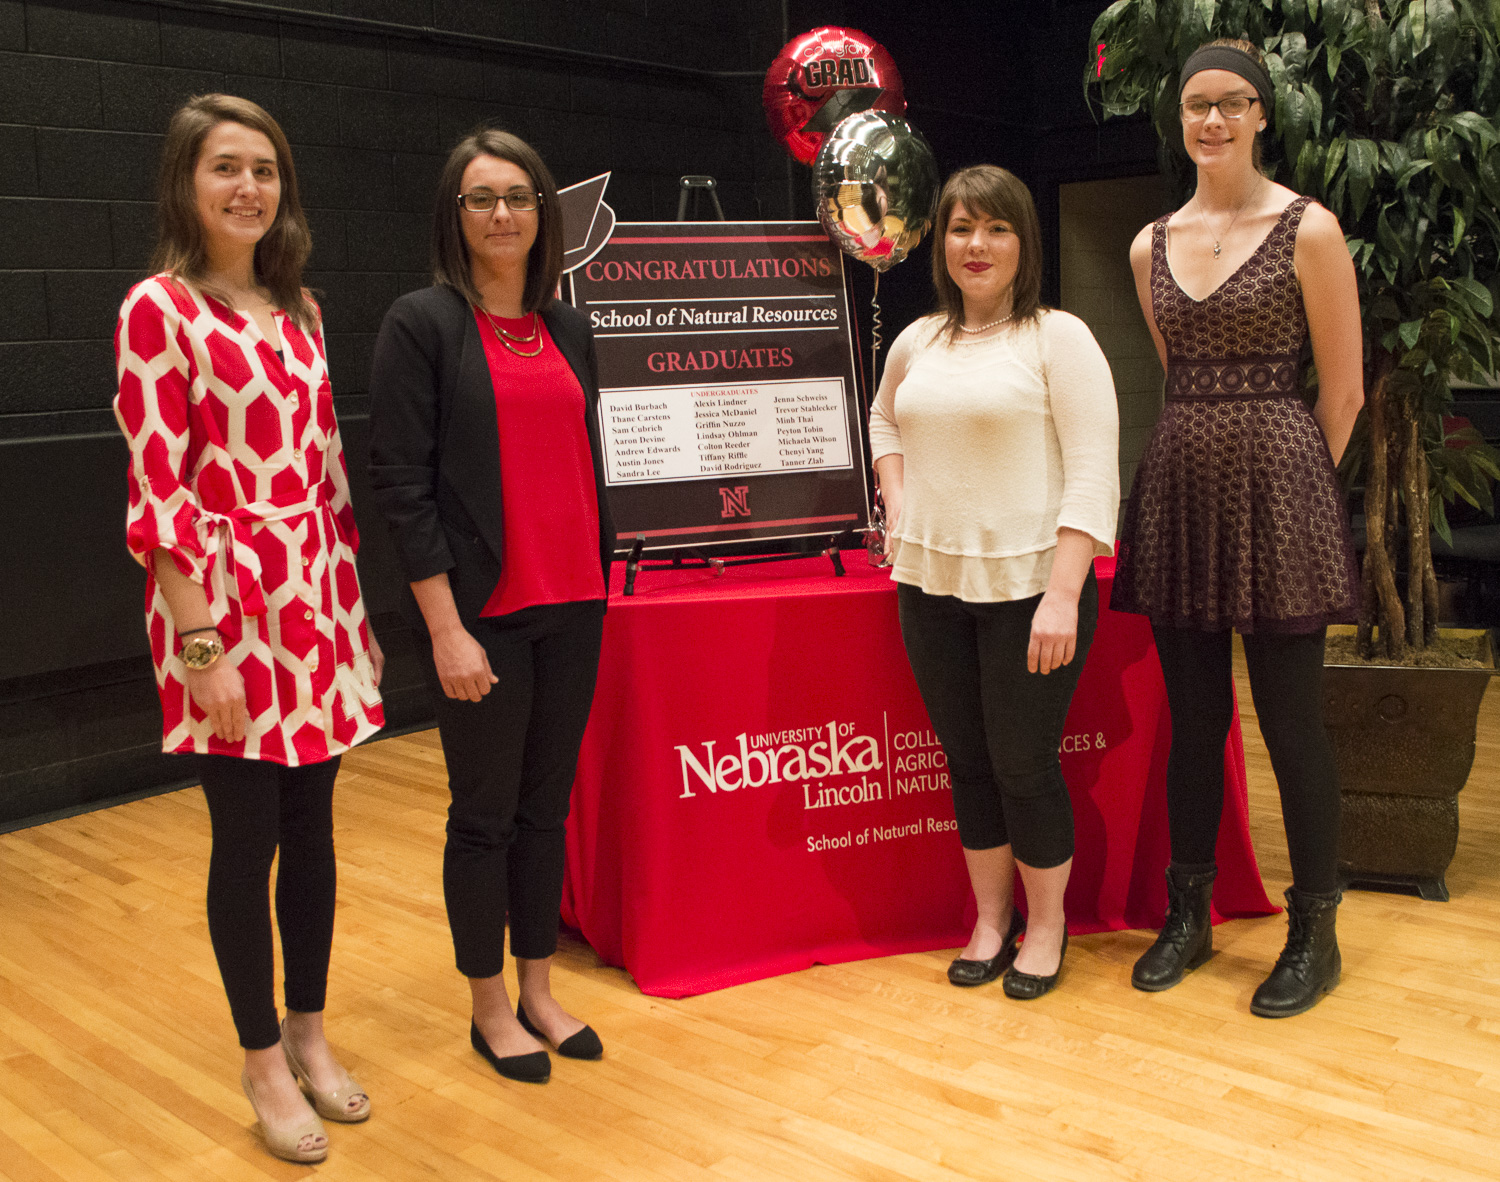 SNR December graduates participate in a Friday reception in their honor before University of Nebraska-Lincoln commencement ceremonies.   Shawna Richter-Ryerson, Natural Resources